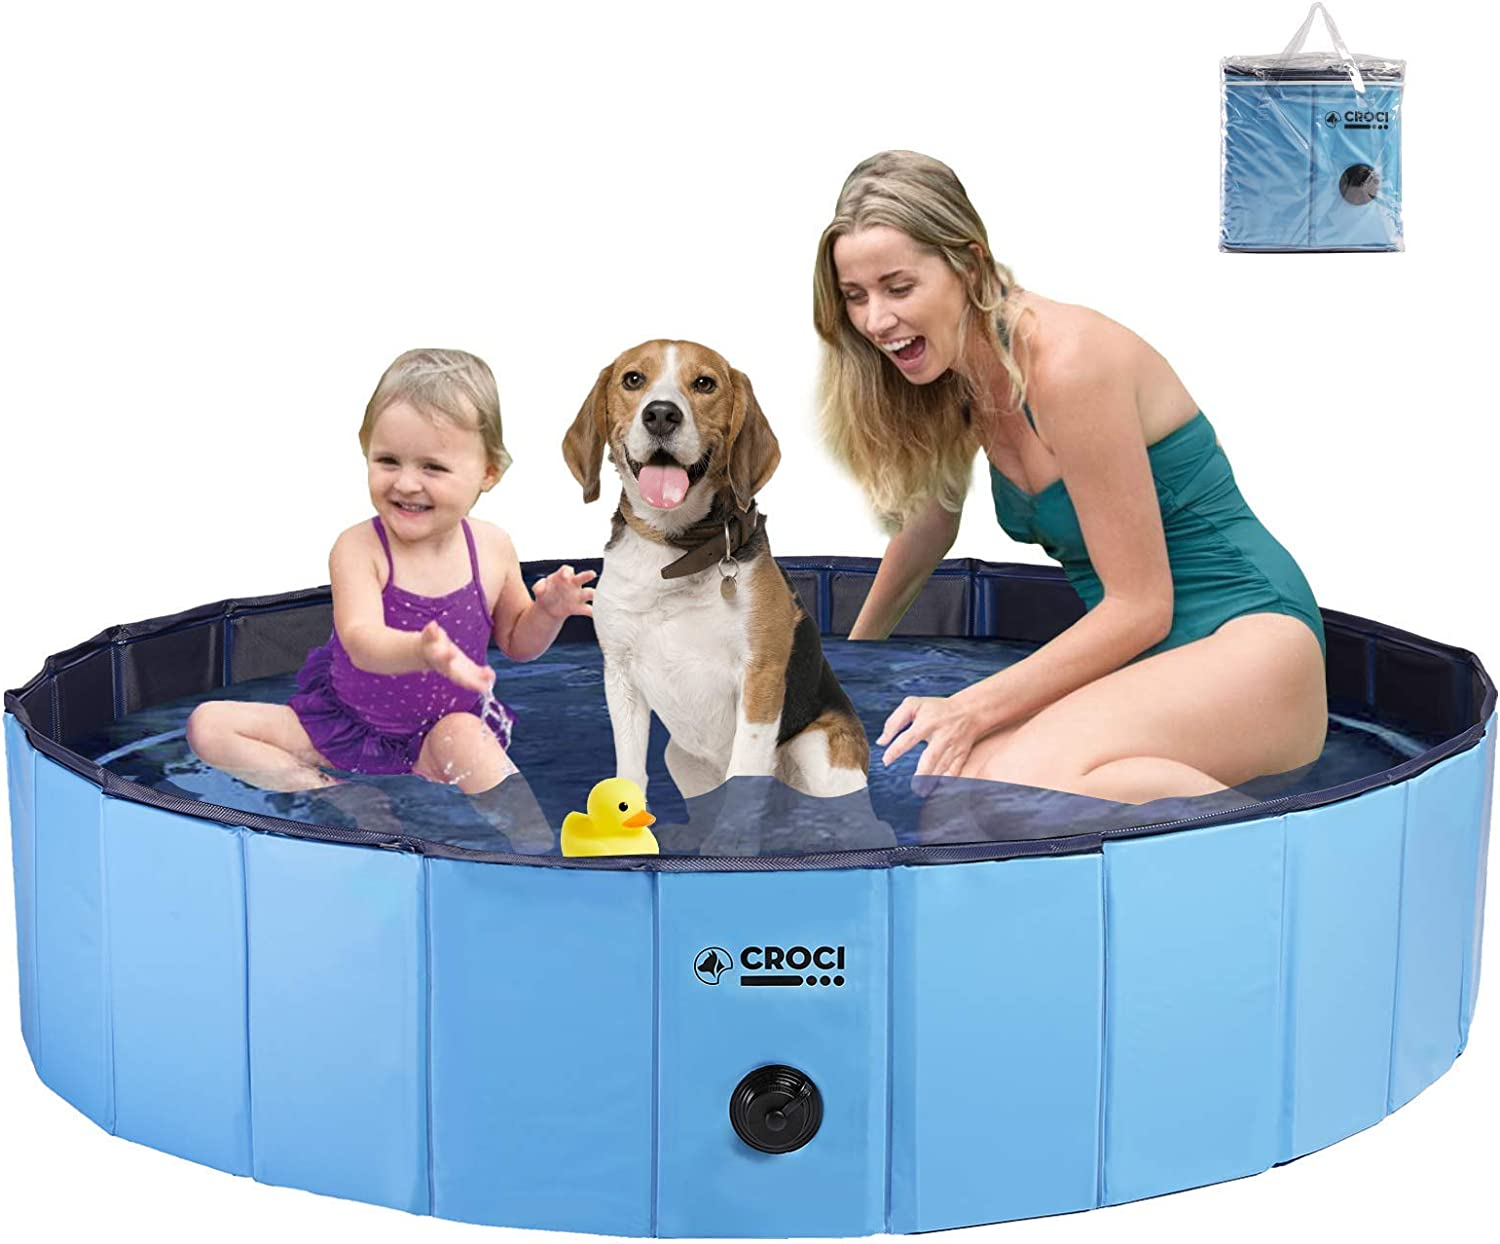 Croci Dog Pool For Medium Dogs 48in Diameter Pet Pool Folable Pvc Hard Plastic Dog Bath Pool Pefect For Kiddie Backyard Water Playing With Pets Pet Supplies